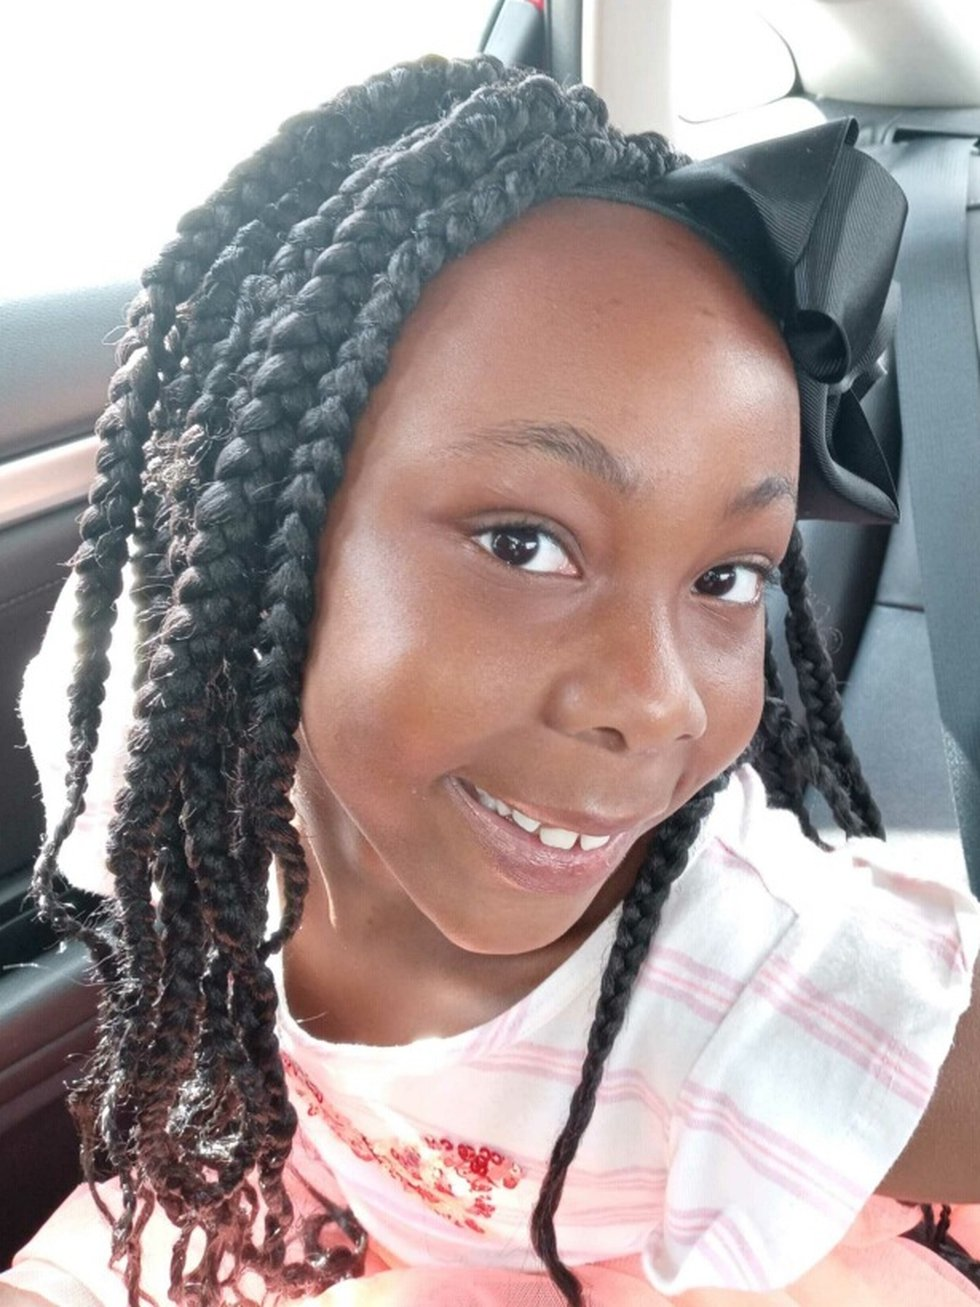 8-year-old Kaitlynn Grady was shot on May 18, 2021 while sitting in the back seat of her mom's...